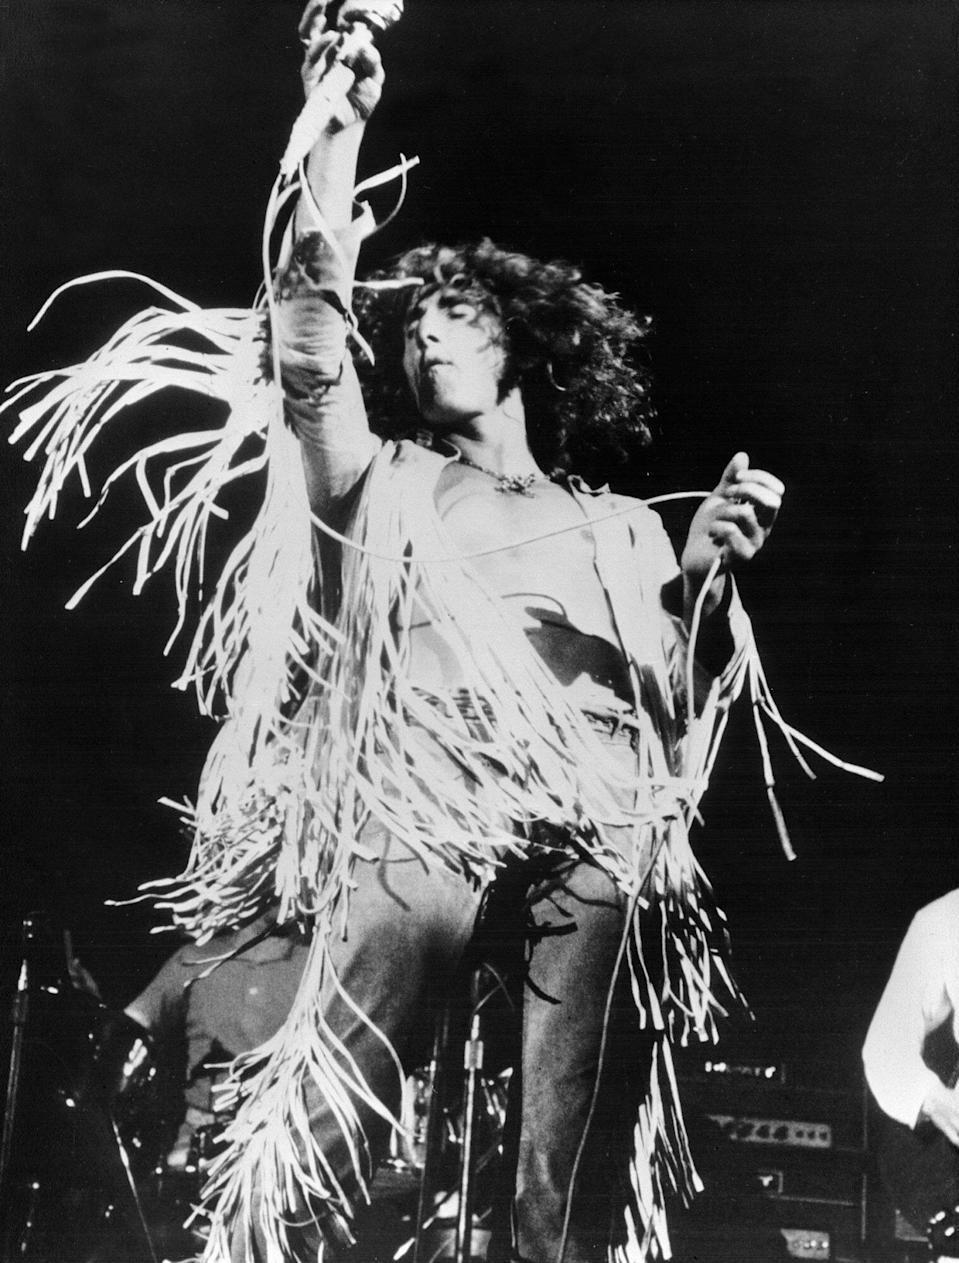 Roger Daltrey Woodstock The Who